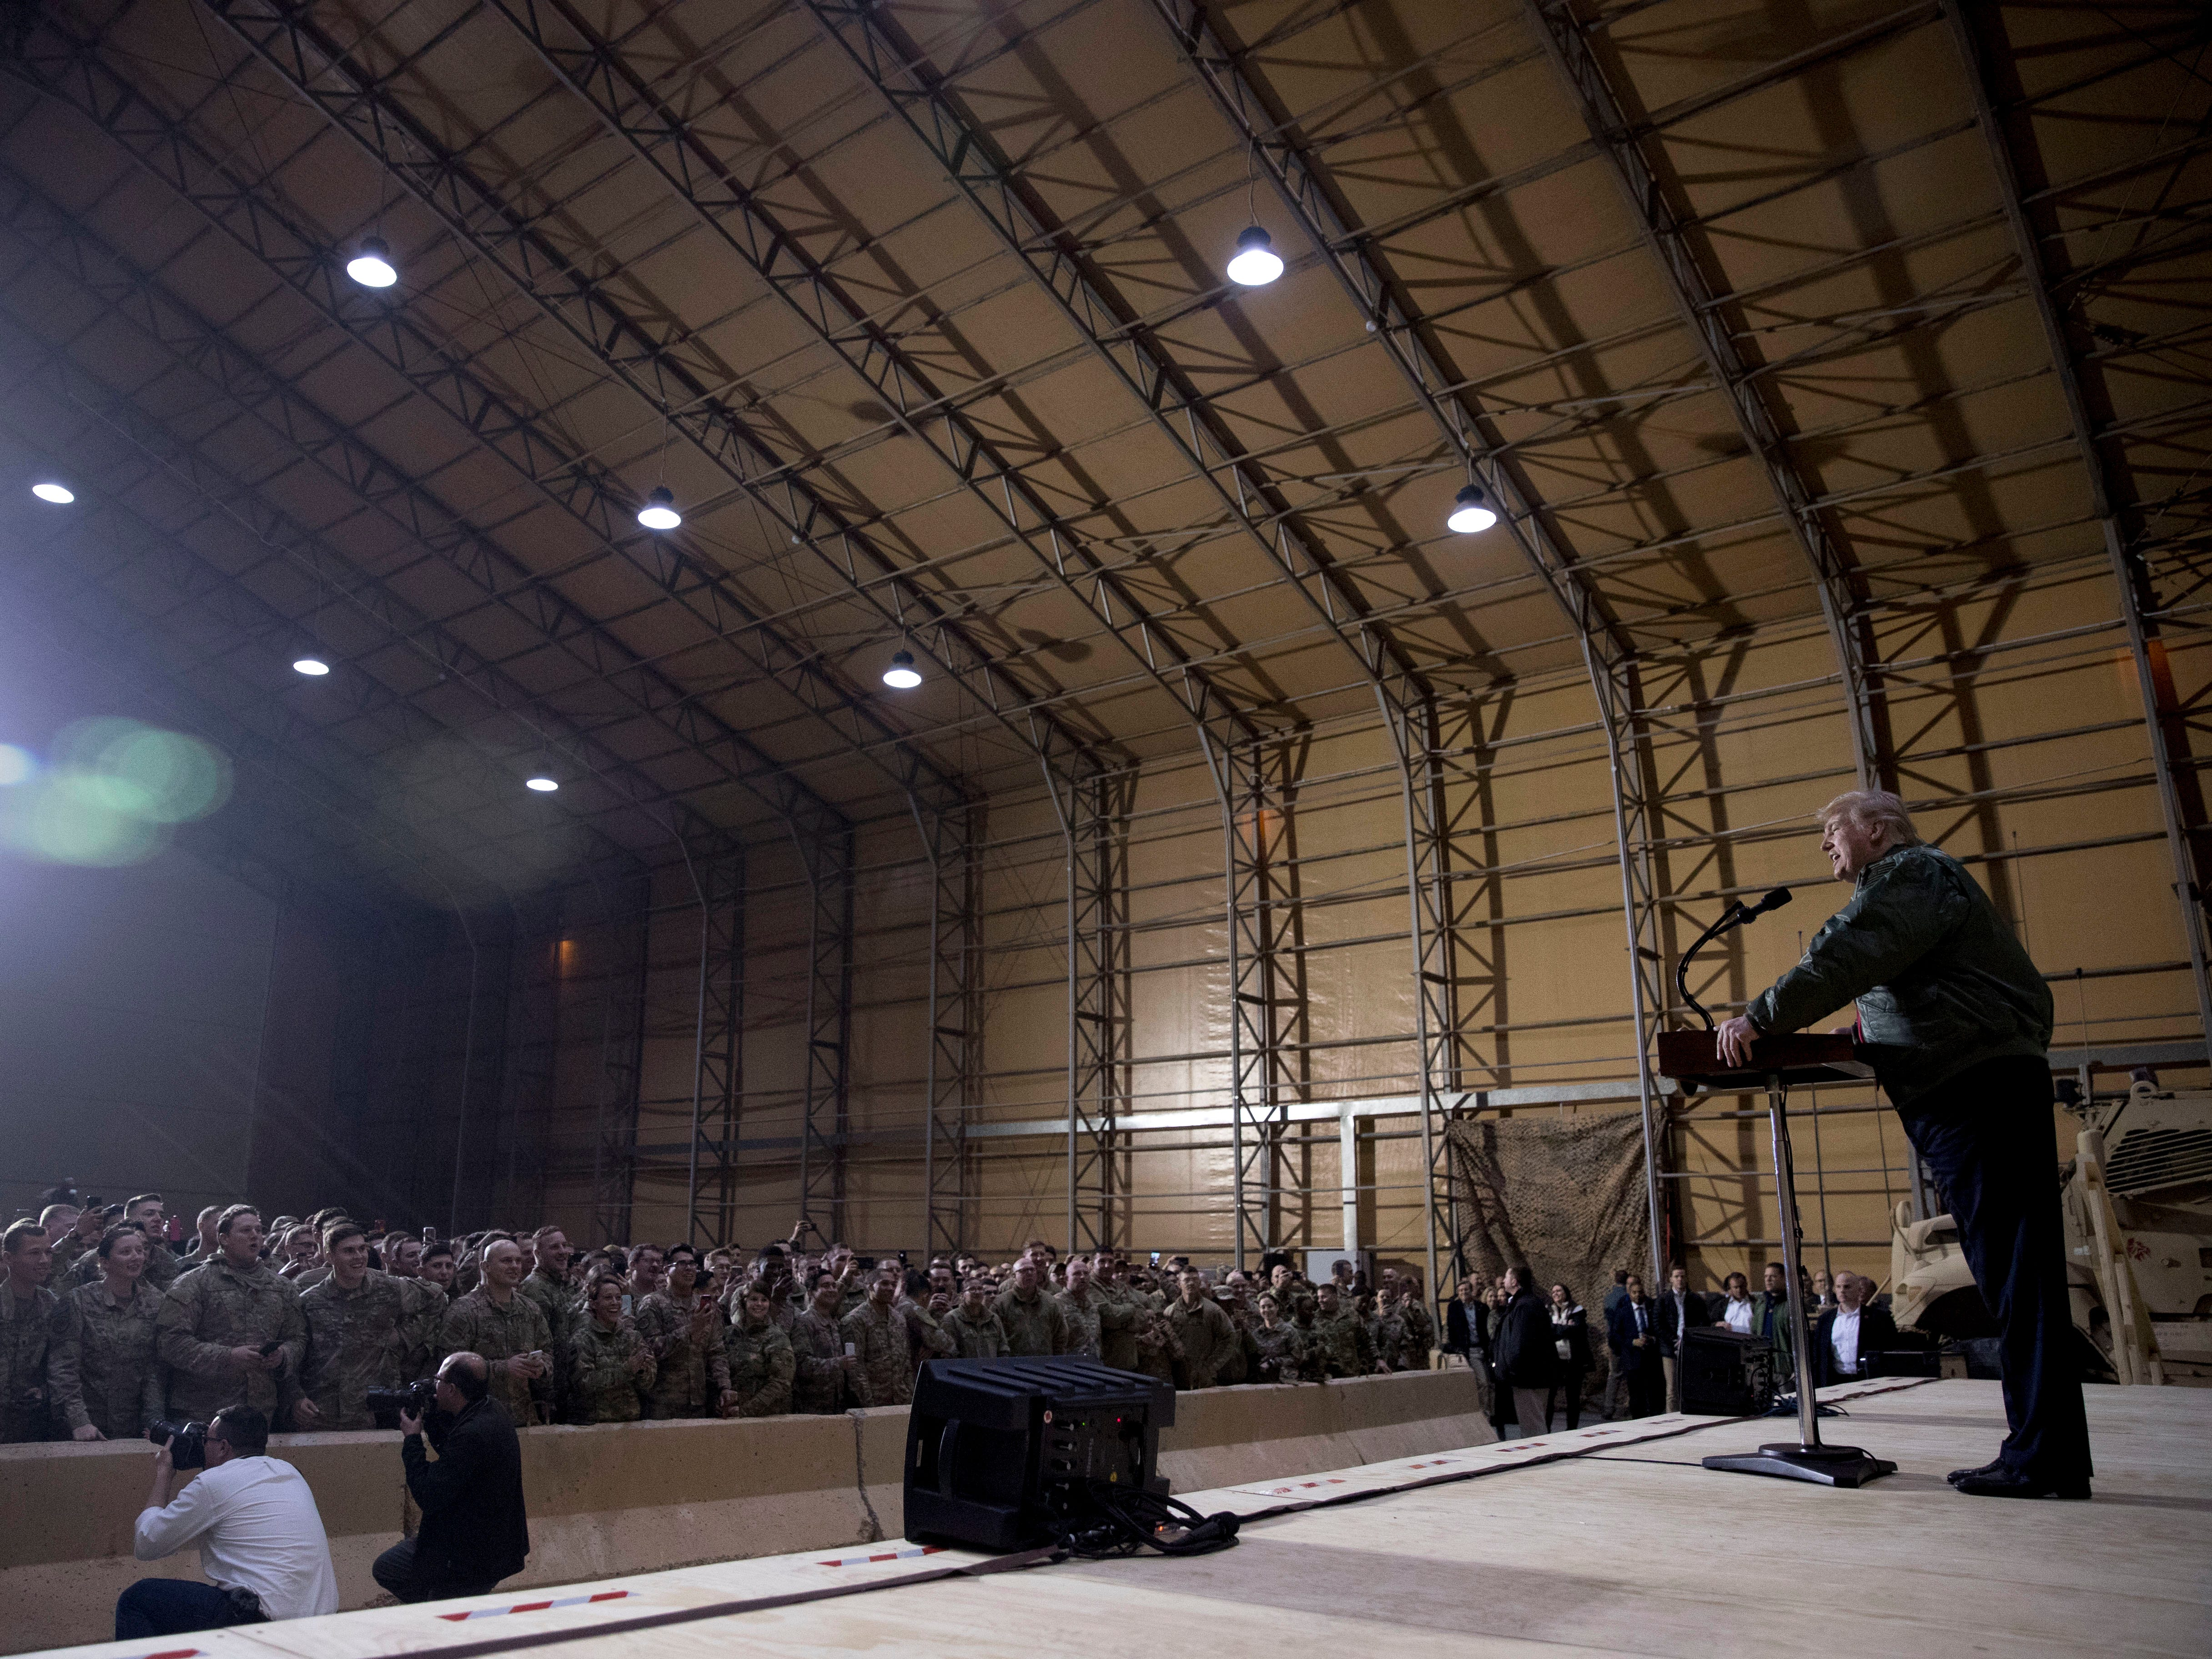 President Donald Trump speaks at a hanger rally at Al Asad Air Base, Iraq, Wednesday, Dec. 26, 2018. President Donald Trump, who is visiting Iraq, says he has 'no plans at all' to remove US troops from the country. (AP Photo/Andrew Harnik) ORG XMIT: IRQA203